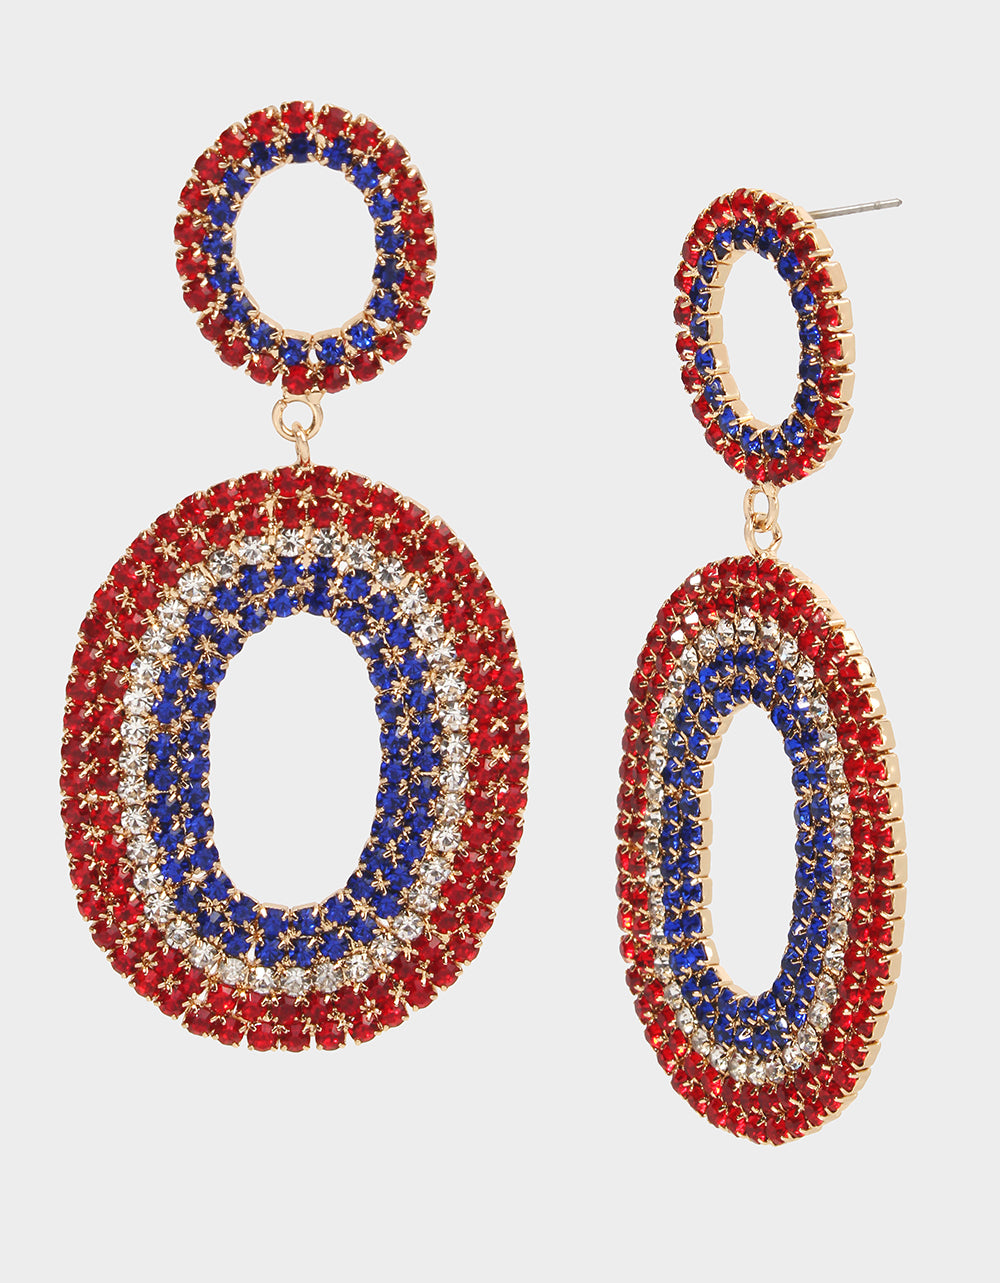 FIREWORK FUN DOUBLE OVAL EARRINGS RED-WHITE-BLUE - JEWELRY - Betsey Johnson